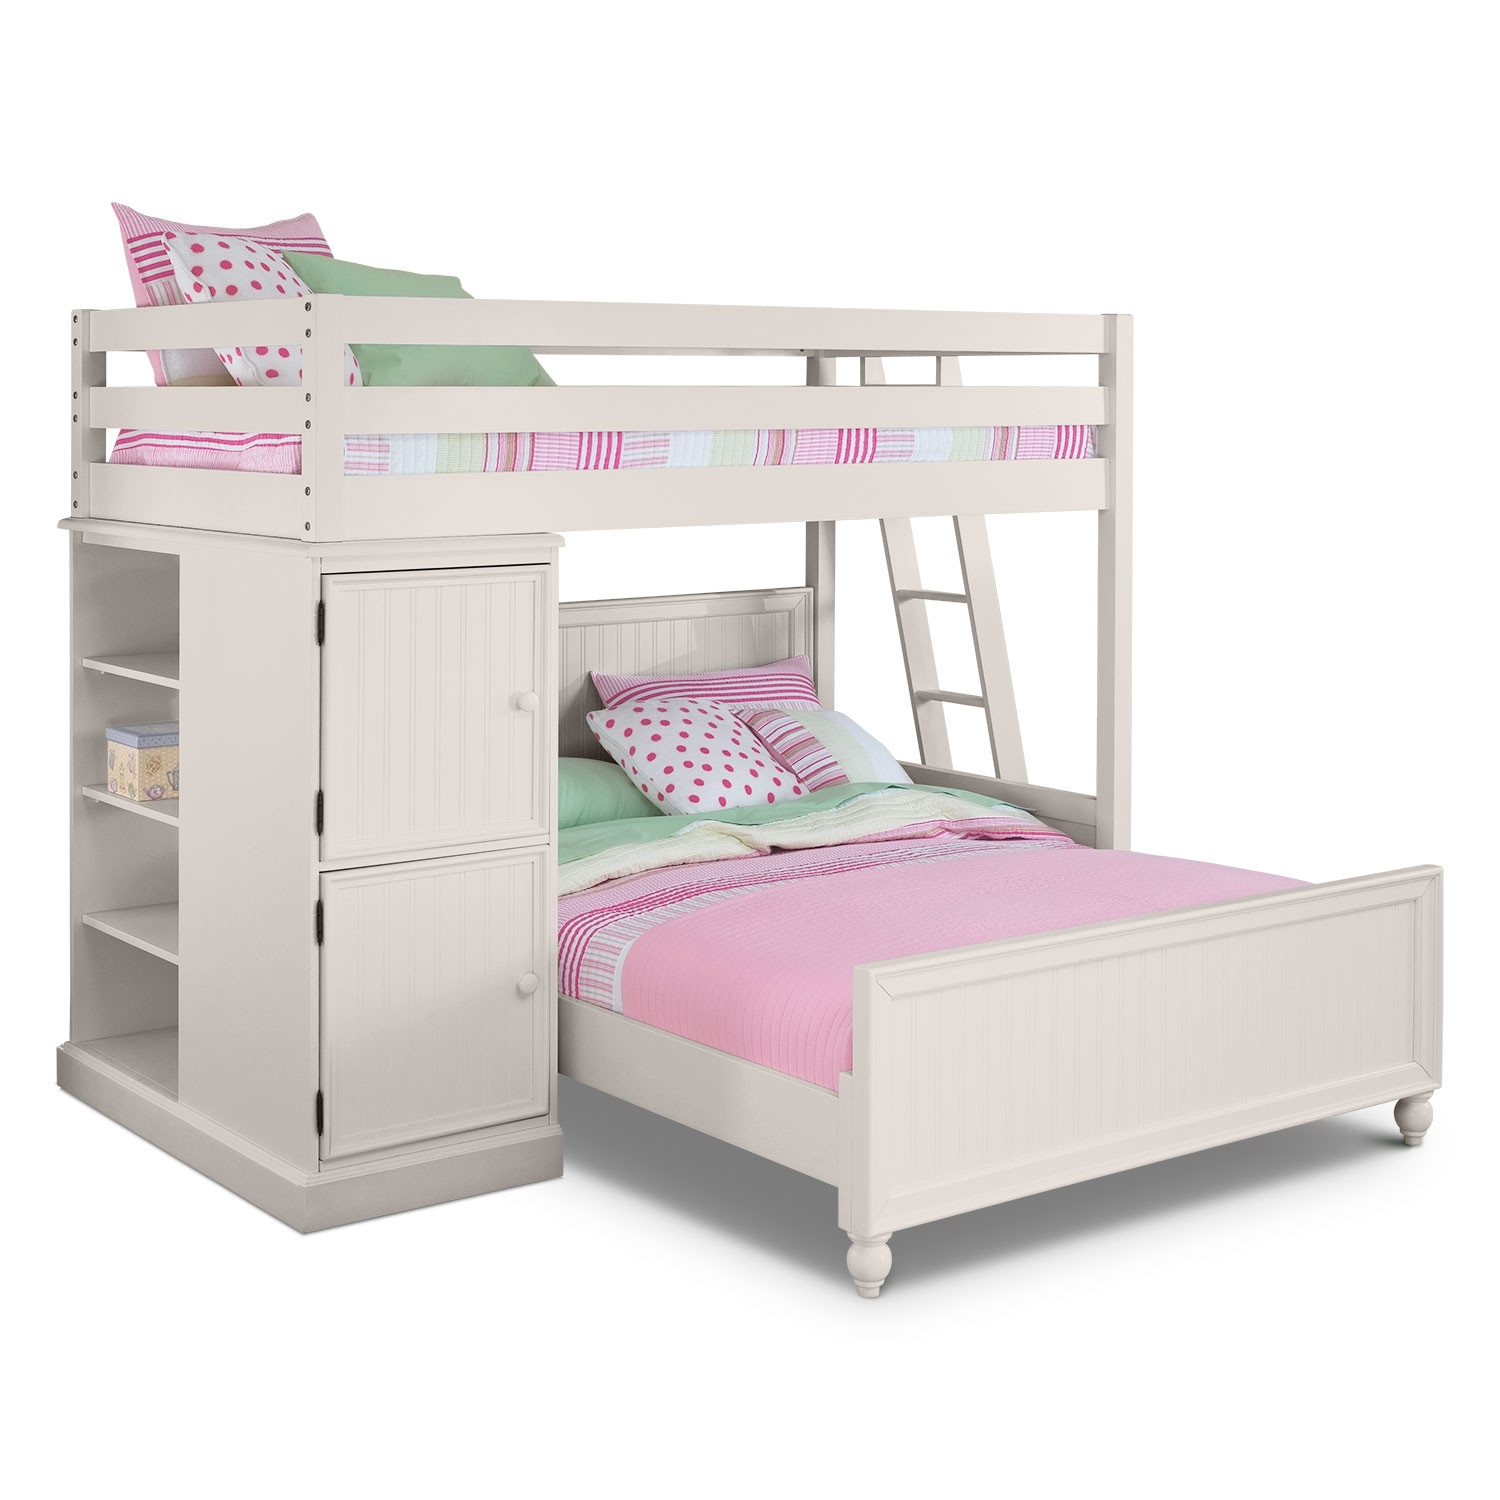 68 Best Images About Loft Beds On Pinterest: Colorworks White II Loft Bed With Full Bed